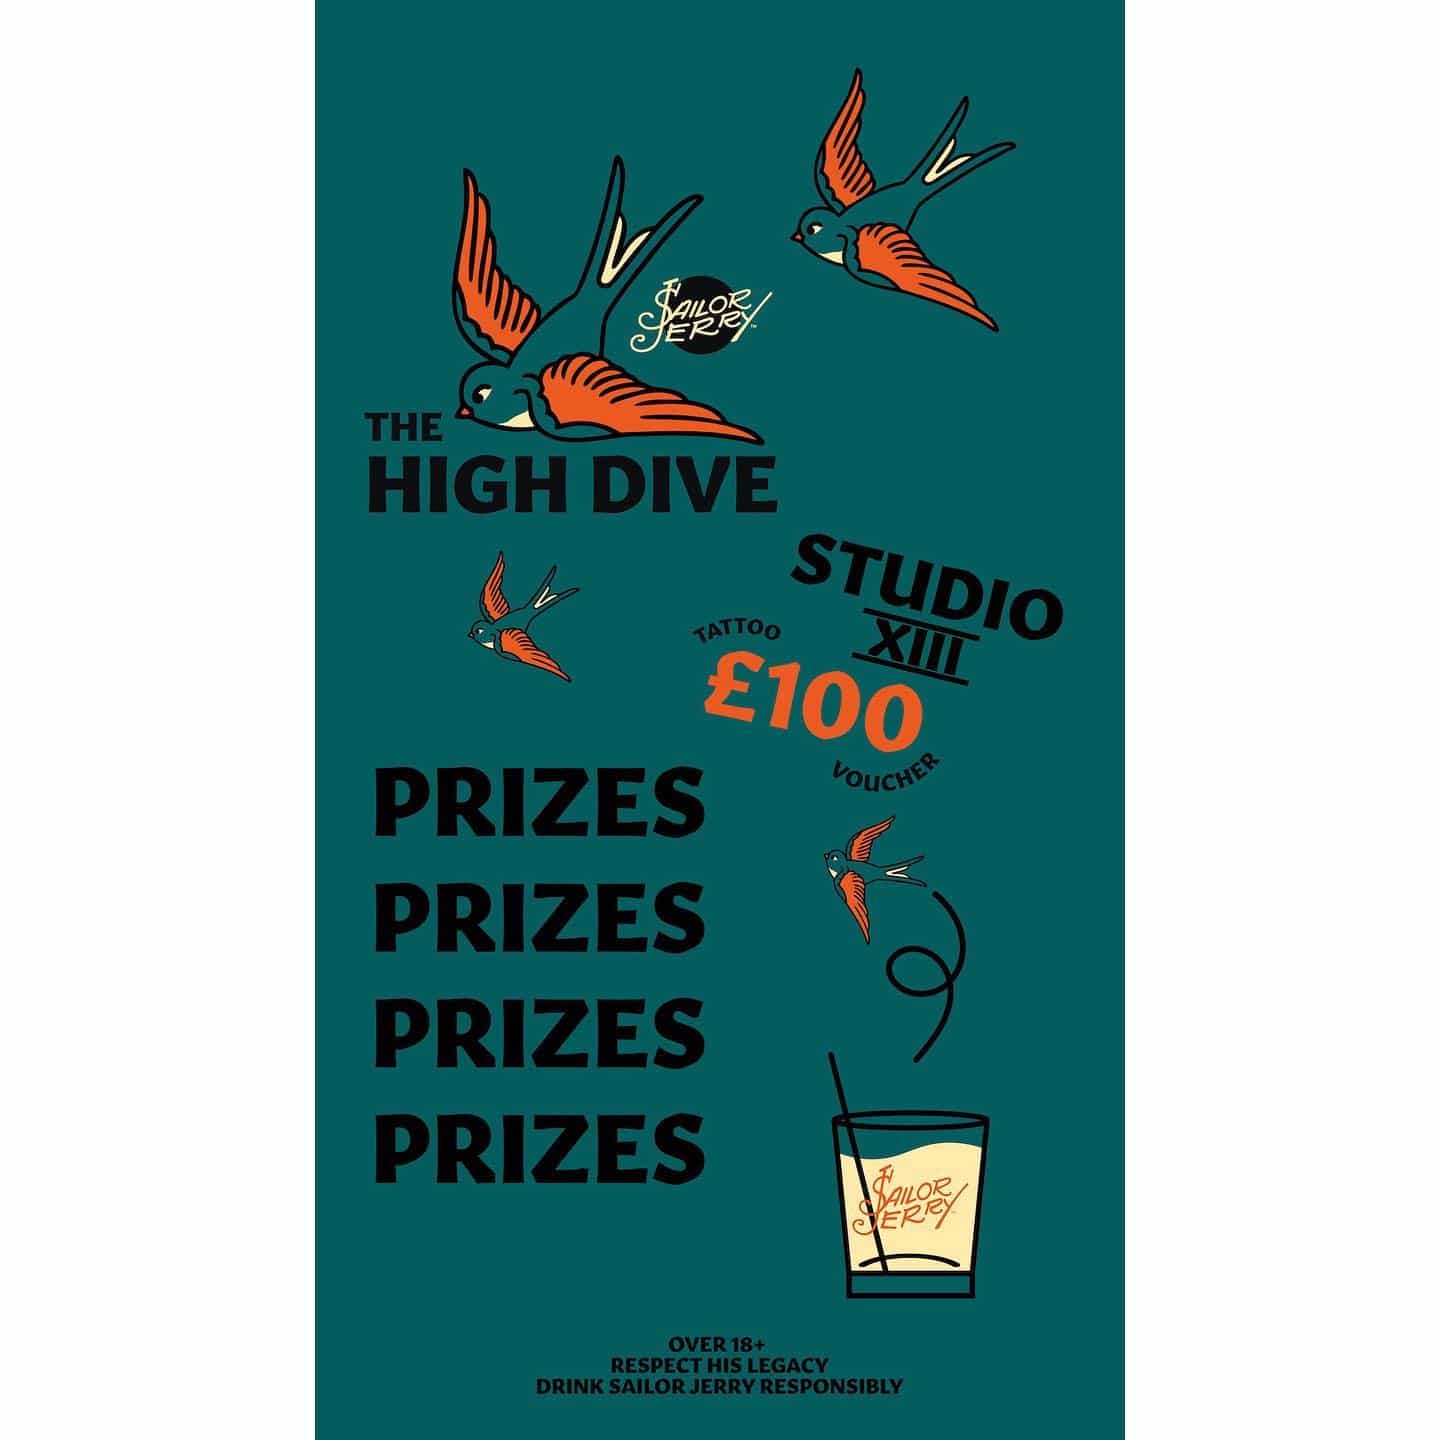 We have put a handful of free tattoo vouchers in the gumball machine at @the_high_dive ! To be in with win all you have to do is buy a sailor jerry drink to receive a token for the machine! It's that simple! The vouchers get you a palm sized @sailorjerry flash tattoo which we have thousands to pick from! Who's gonna win first!?!? ————— ————— uktattooartists uktattoo inked inkedmag skinart skinartmag traditionaltattoo tradworkers colourtattoos scotland edinburghtattoo edinburghlife scotlandtattoo uktta oldschooltattoo fineline cleanwork inkdup inkd skindeep performer besttattoos blackclaw girlswithtattoos uktattoosupplies blackclaw solidink sailorjerry scottishtattoo thescottishtattoo studioxiii @barber_dts @easytattoo_uk @eternalink @dynamiccolor @lockdownneedle @stencilstuff